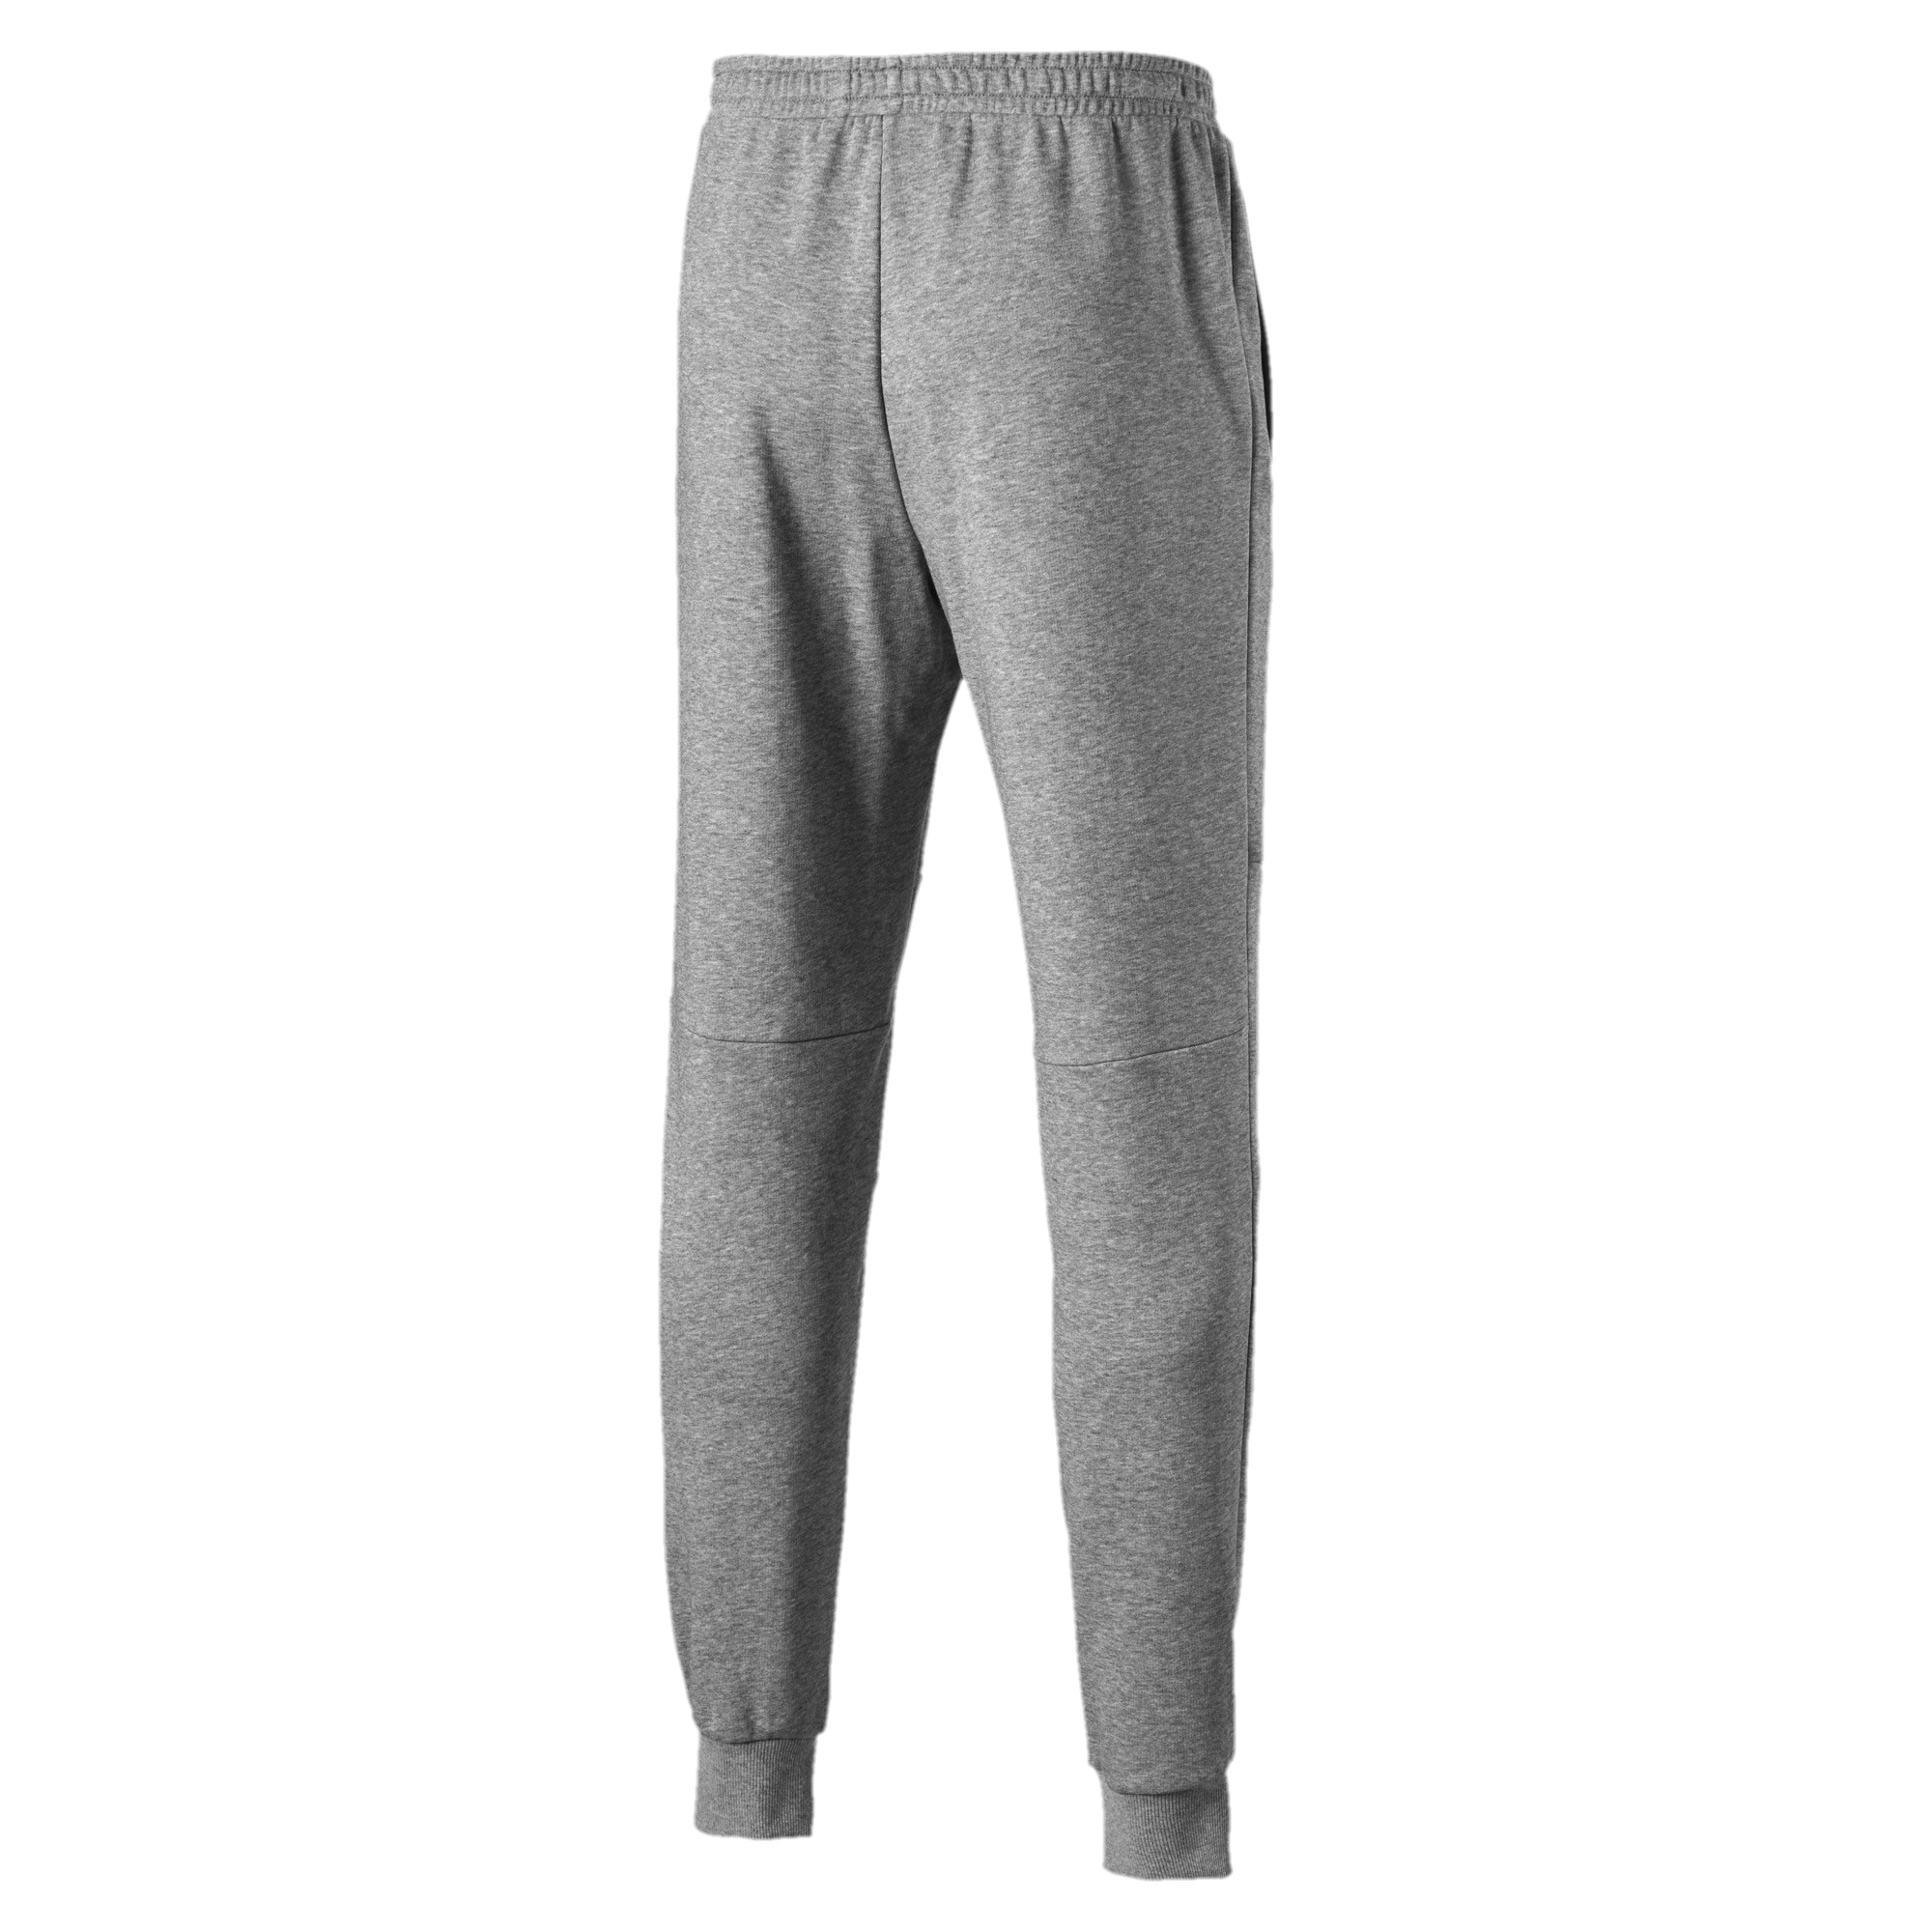 RBR Logo Sweat Pants